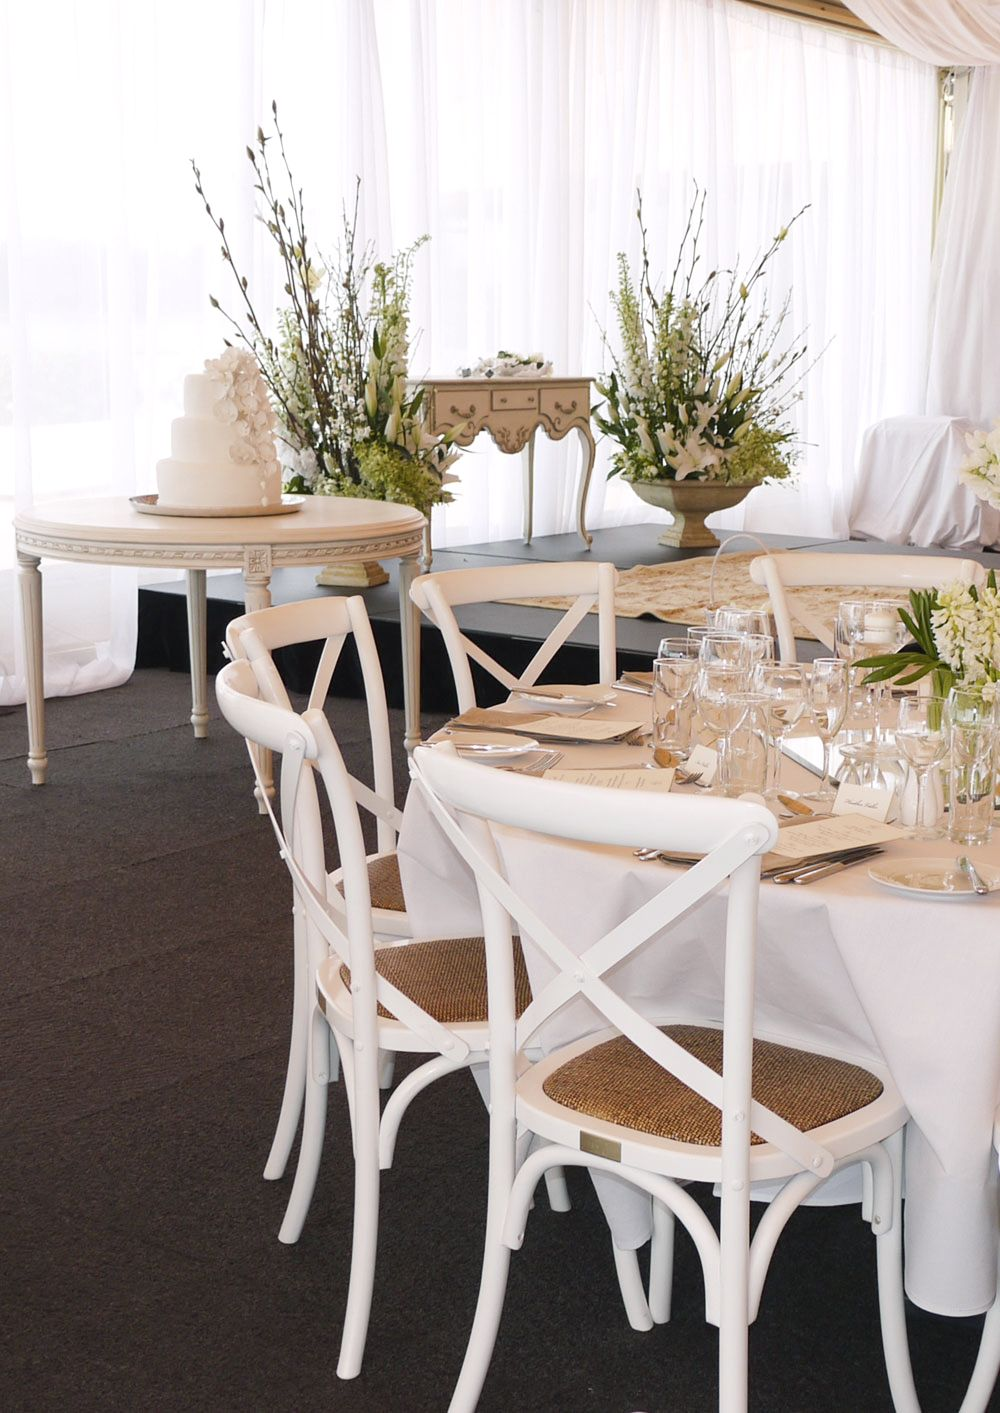 French Provincial Style Wedding   Country Crossback Chairs And Louis XVI  Table   French Provincial Style In Sydney, Australia